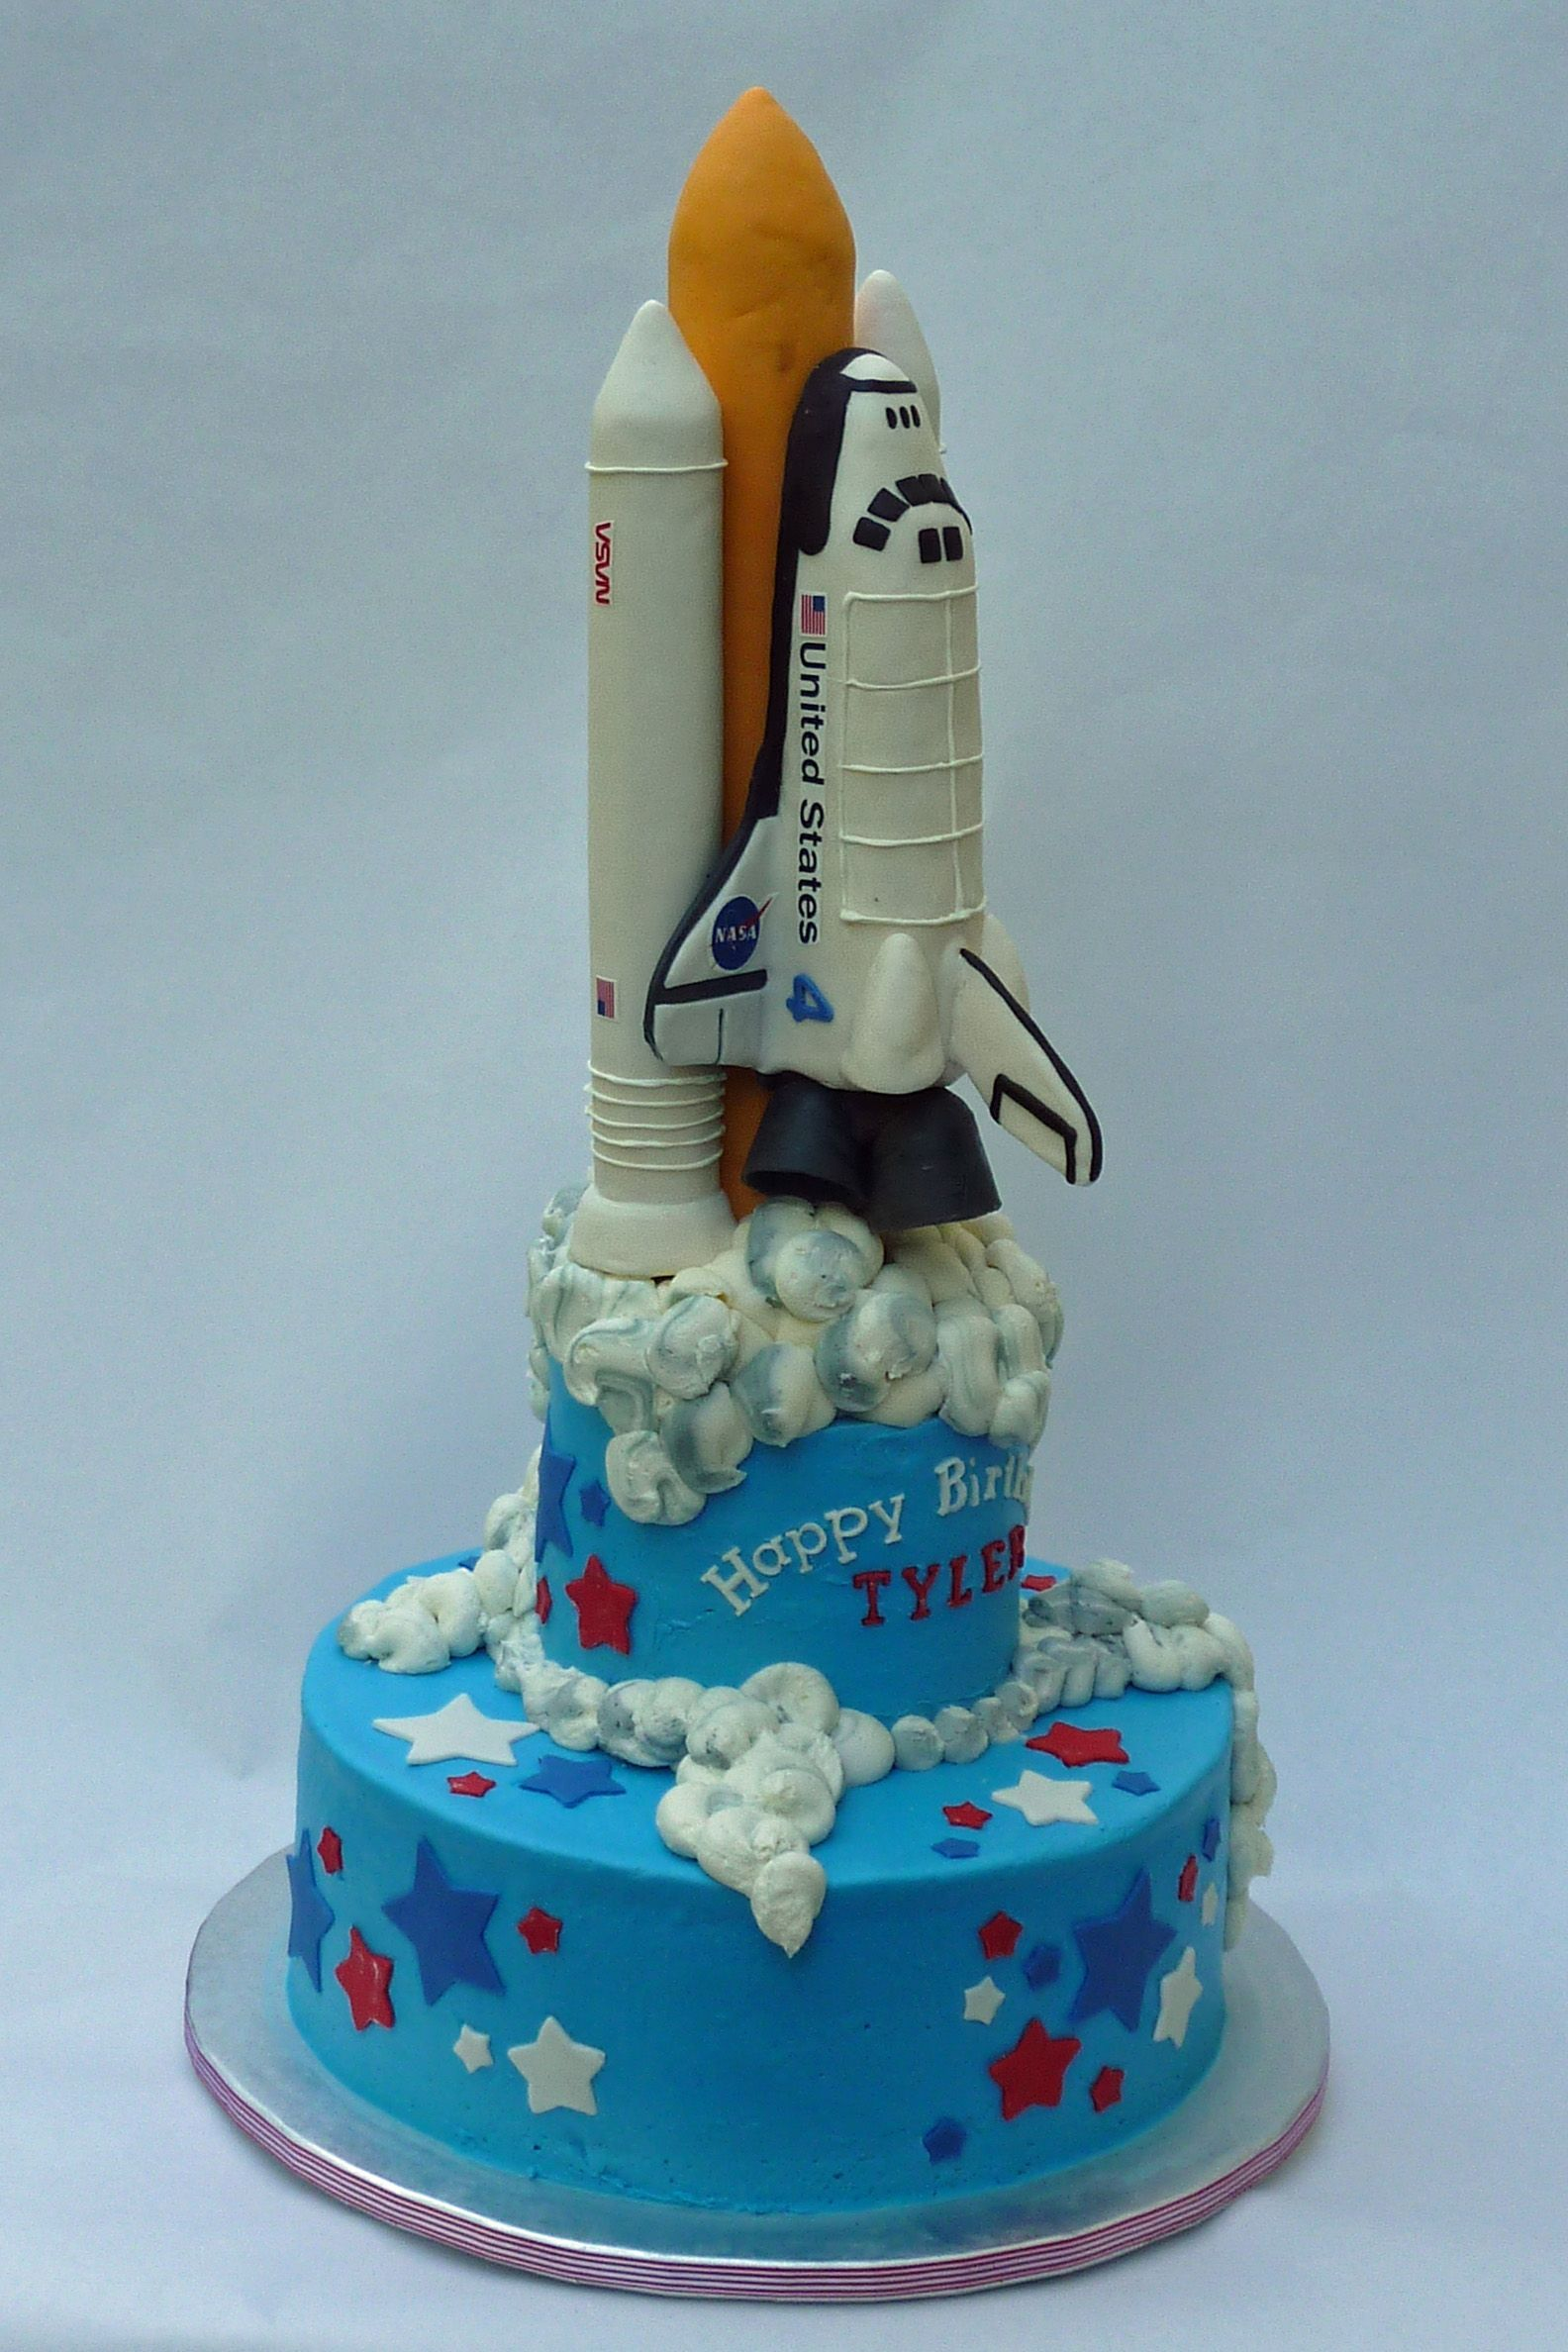 3 2 1 Ignition We Are Go For Space Shuttle